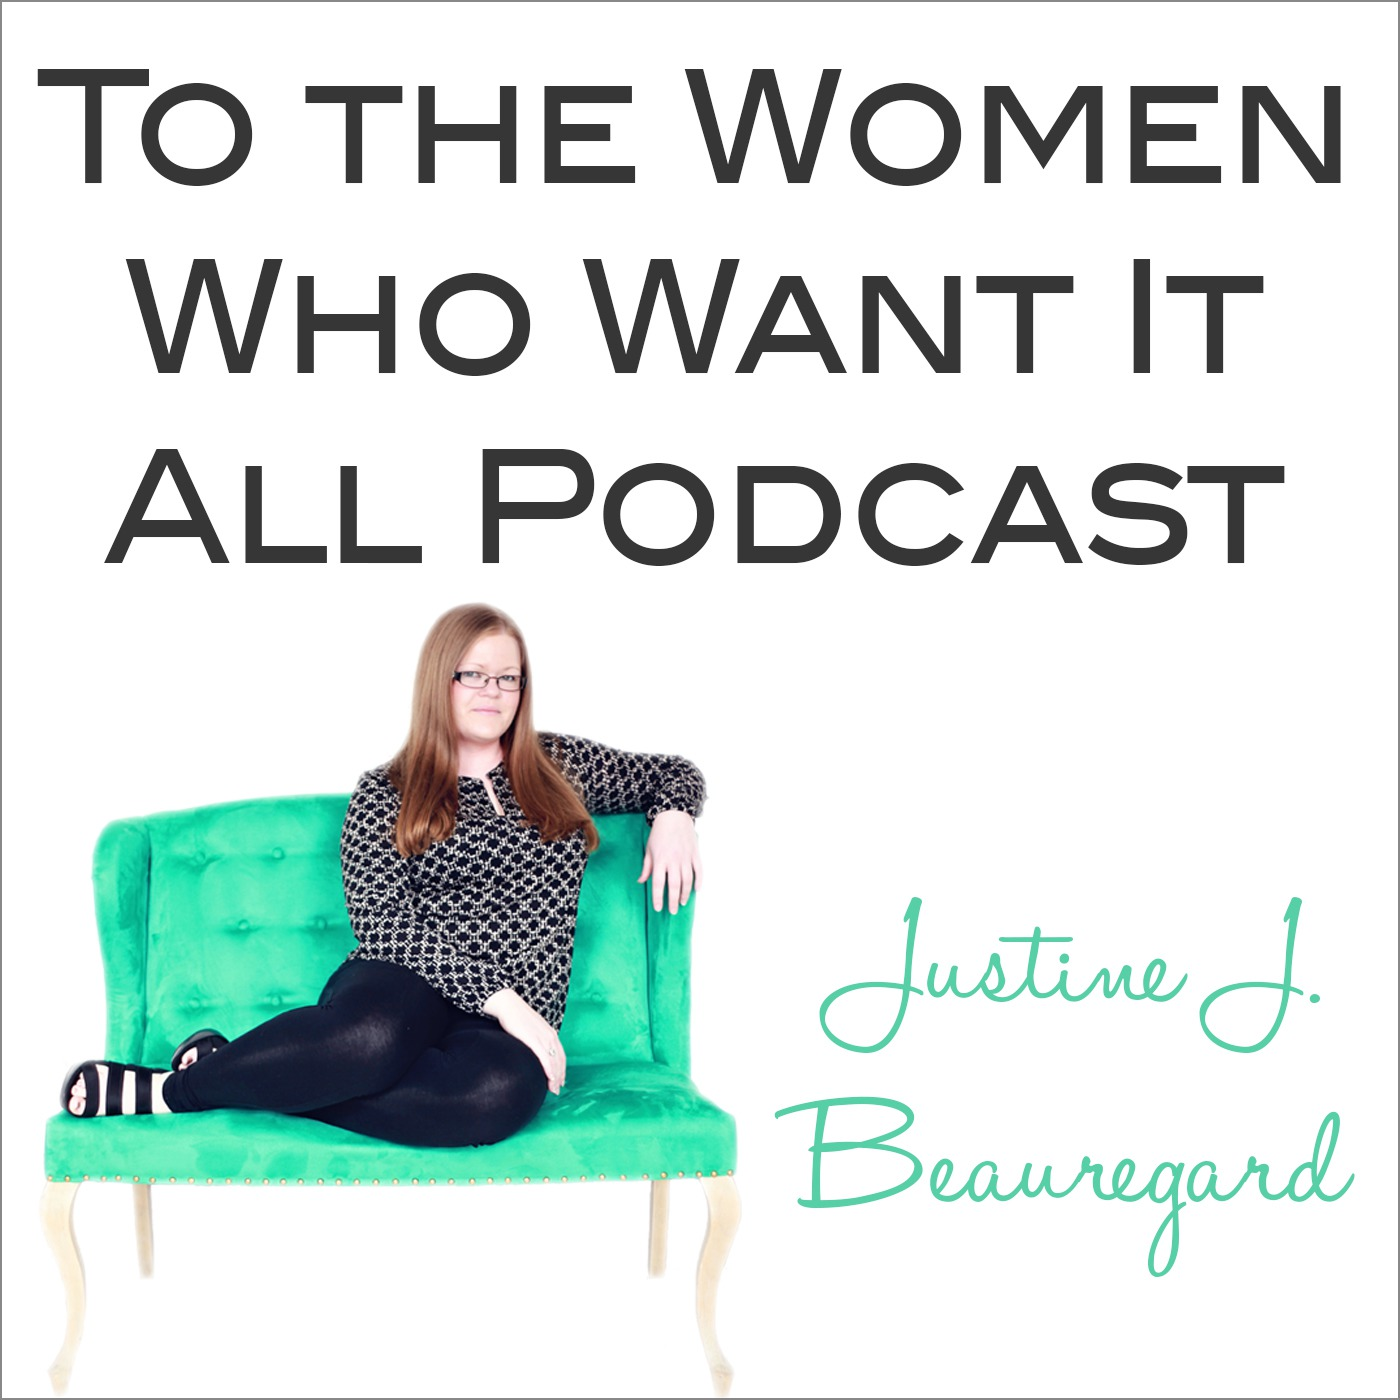 To the Women Who Want It All Podcast